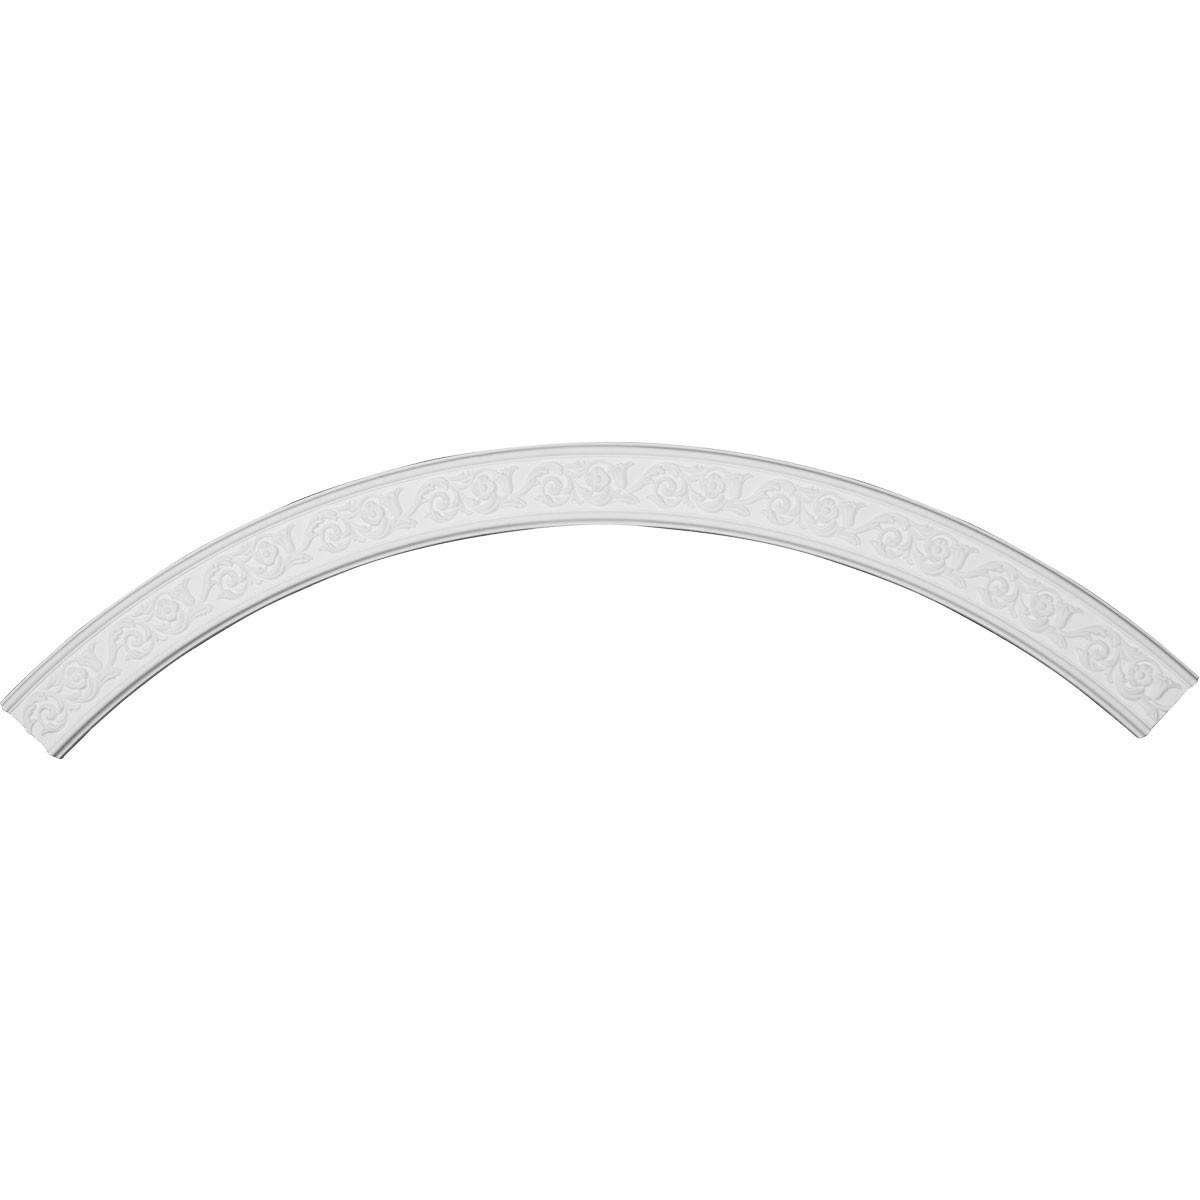 """EM-CR87AB - 87 3/8""""OD x 78 3/4""""ID x 4 3/8""""W x 3/4""""P Aberdeen Ceiling Ring (1/4 of complete circle)"""